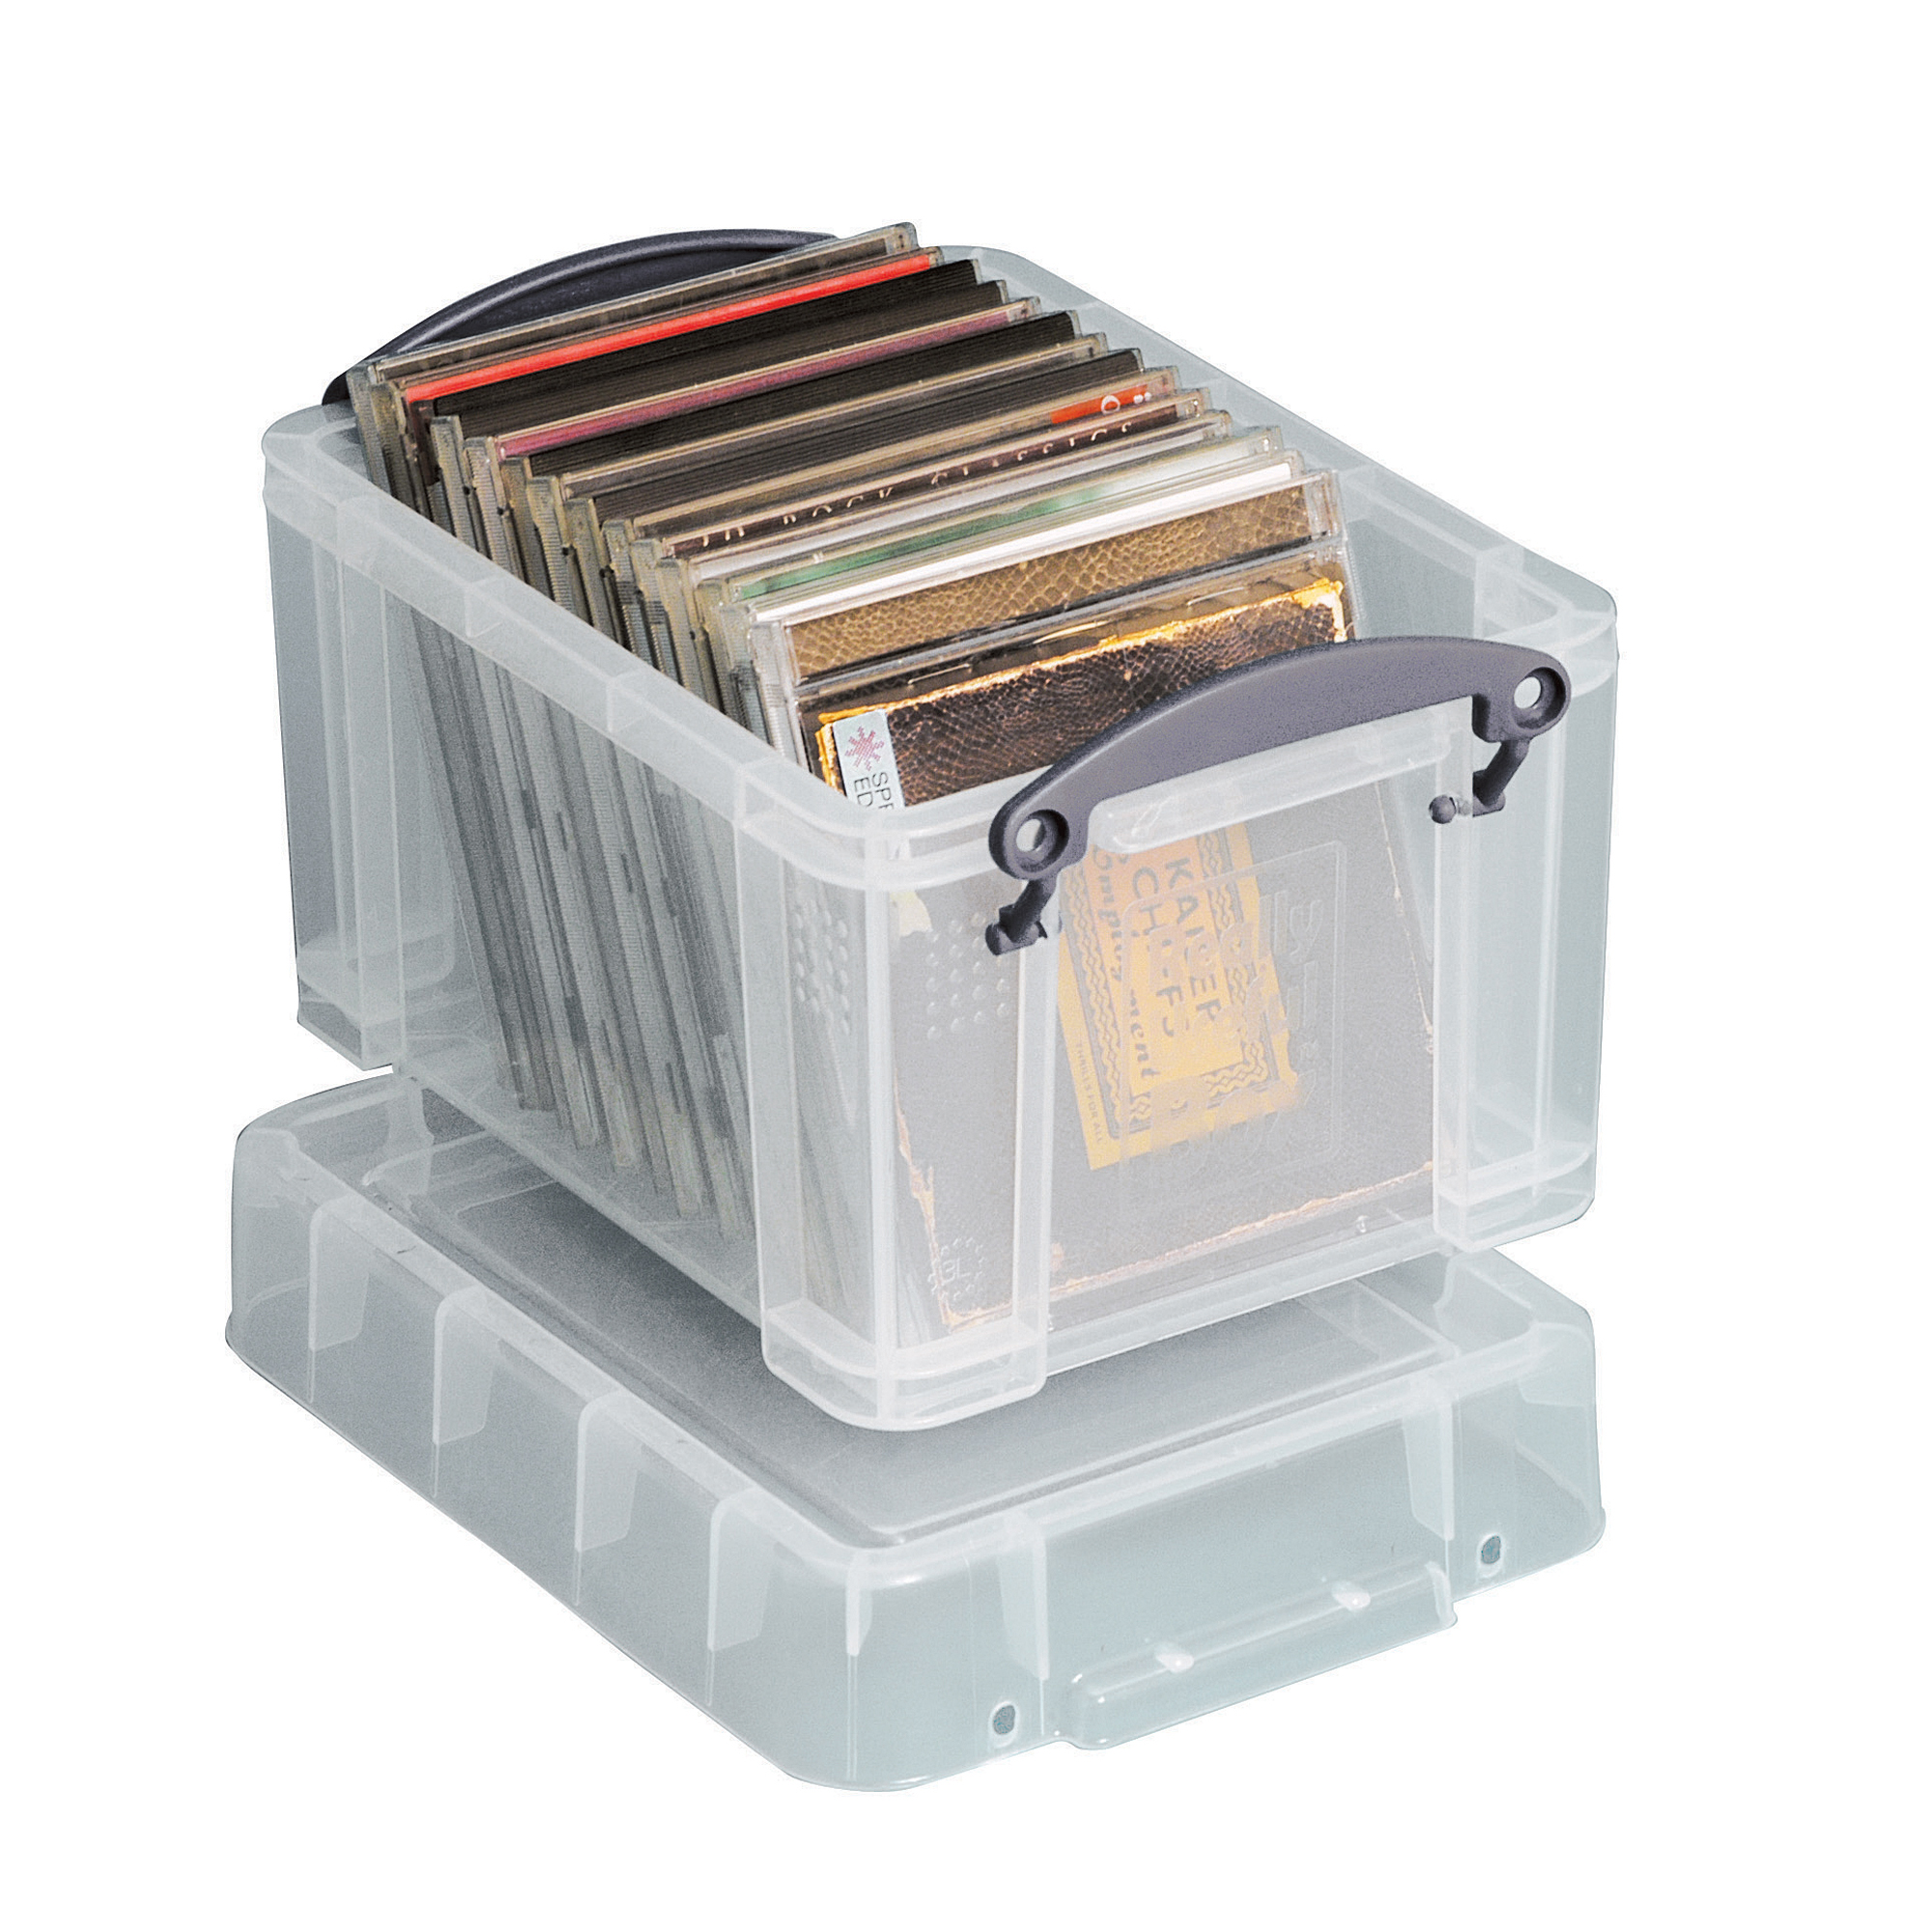 """Really Useful Box® Plastic Storage Box, 3 Liters, 7 1/6"""" x 9 5/8"""" x 6 1/4"""", Assorted Colors (No Color Choice)"""